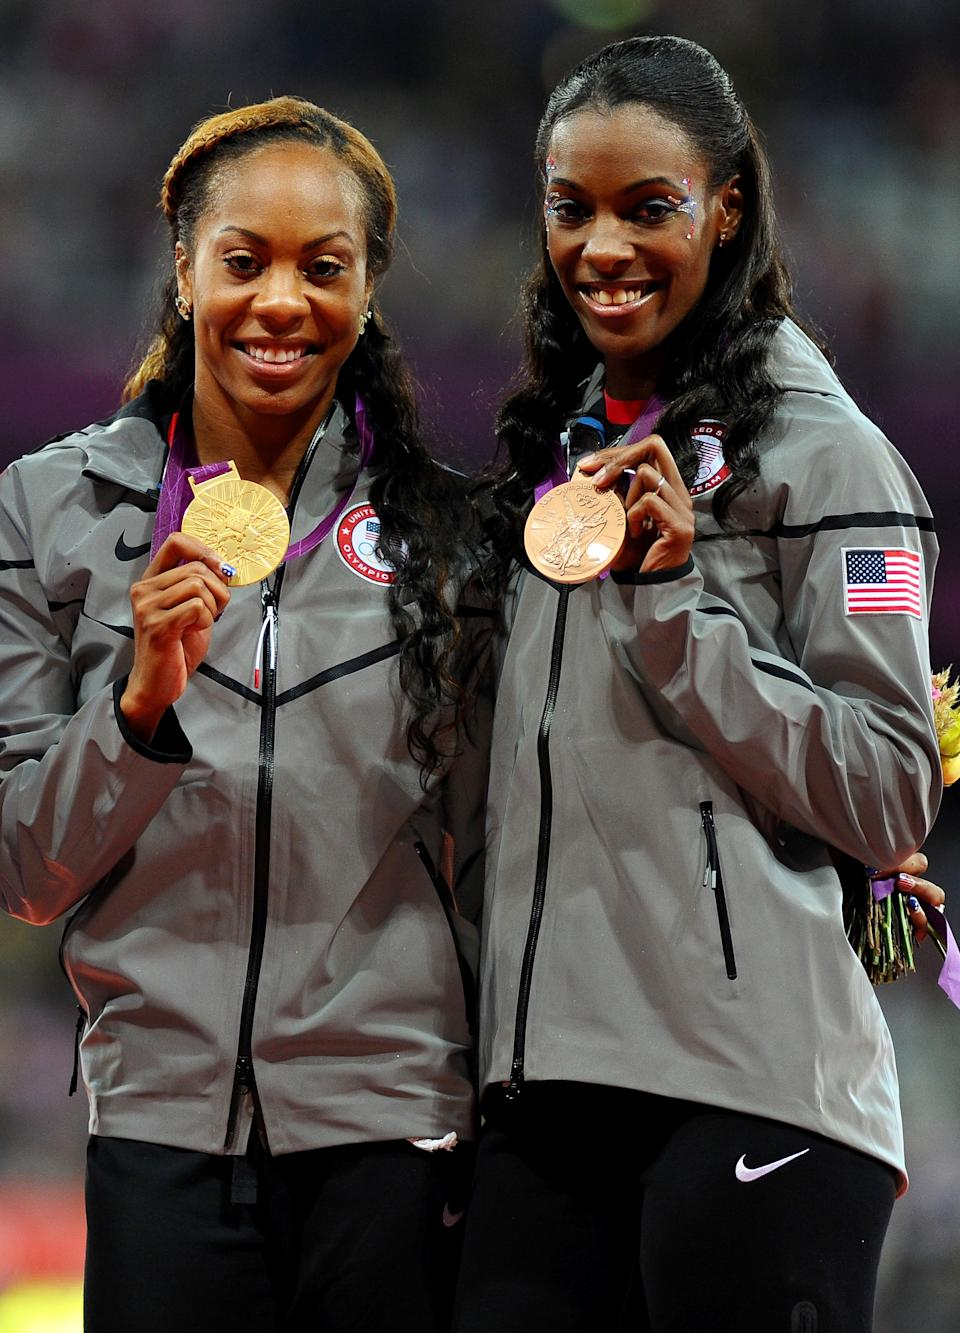 """(L-R) Gold medalist <a href=""""http://sports.yahoo.com/olympics/track-field/sanya-richards-ross-1130538/"""" data-ylk=""""slk:Sanya Richards-Ross"""" class=""""link rapid-noclick-resp"""">Sanya Richards-Ross</a> and bronze medalist <a href=""""http://sports.yahoo.com/olympics/track-field/deedee-trotter-1131834/"""" data-ylk=""""slk:DeeDee Trotter"""" class=""""link rapid-noclick-resp"""">DeeDee Trotter</a> of the United States pose on the podium during the medal ceremony for the Women's 400m Final on Day 9 of the London 2012 Olympic Games at the Olympic Stadium on August 5, 2012 in London, England. (Photo by Mike Hewitt/Getty Images)"""